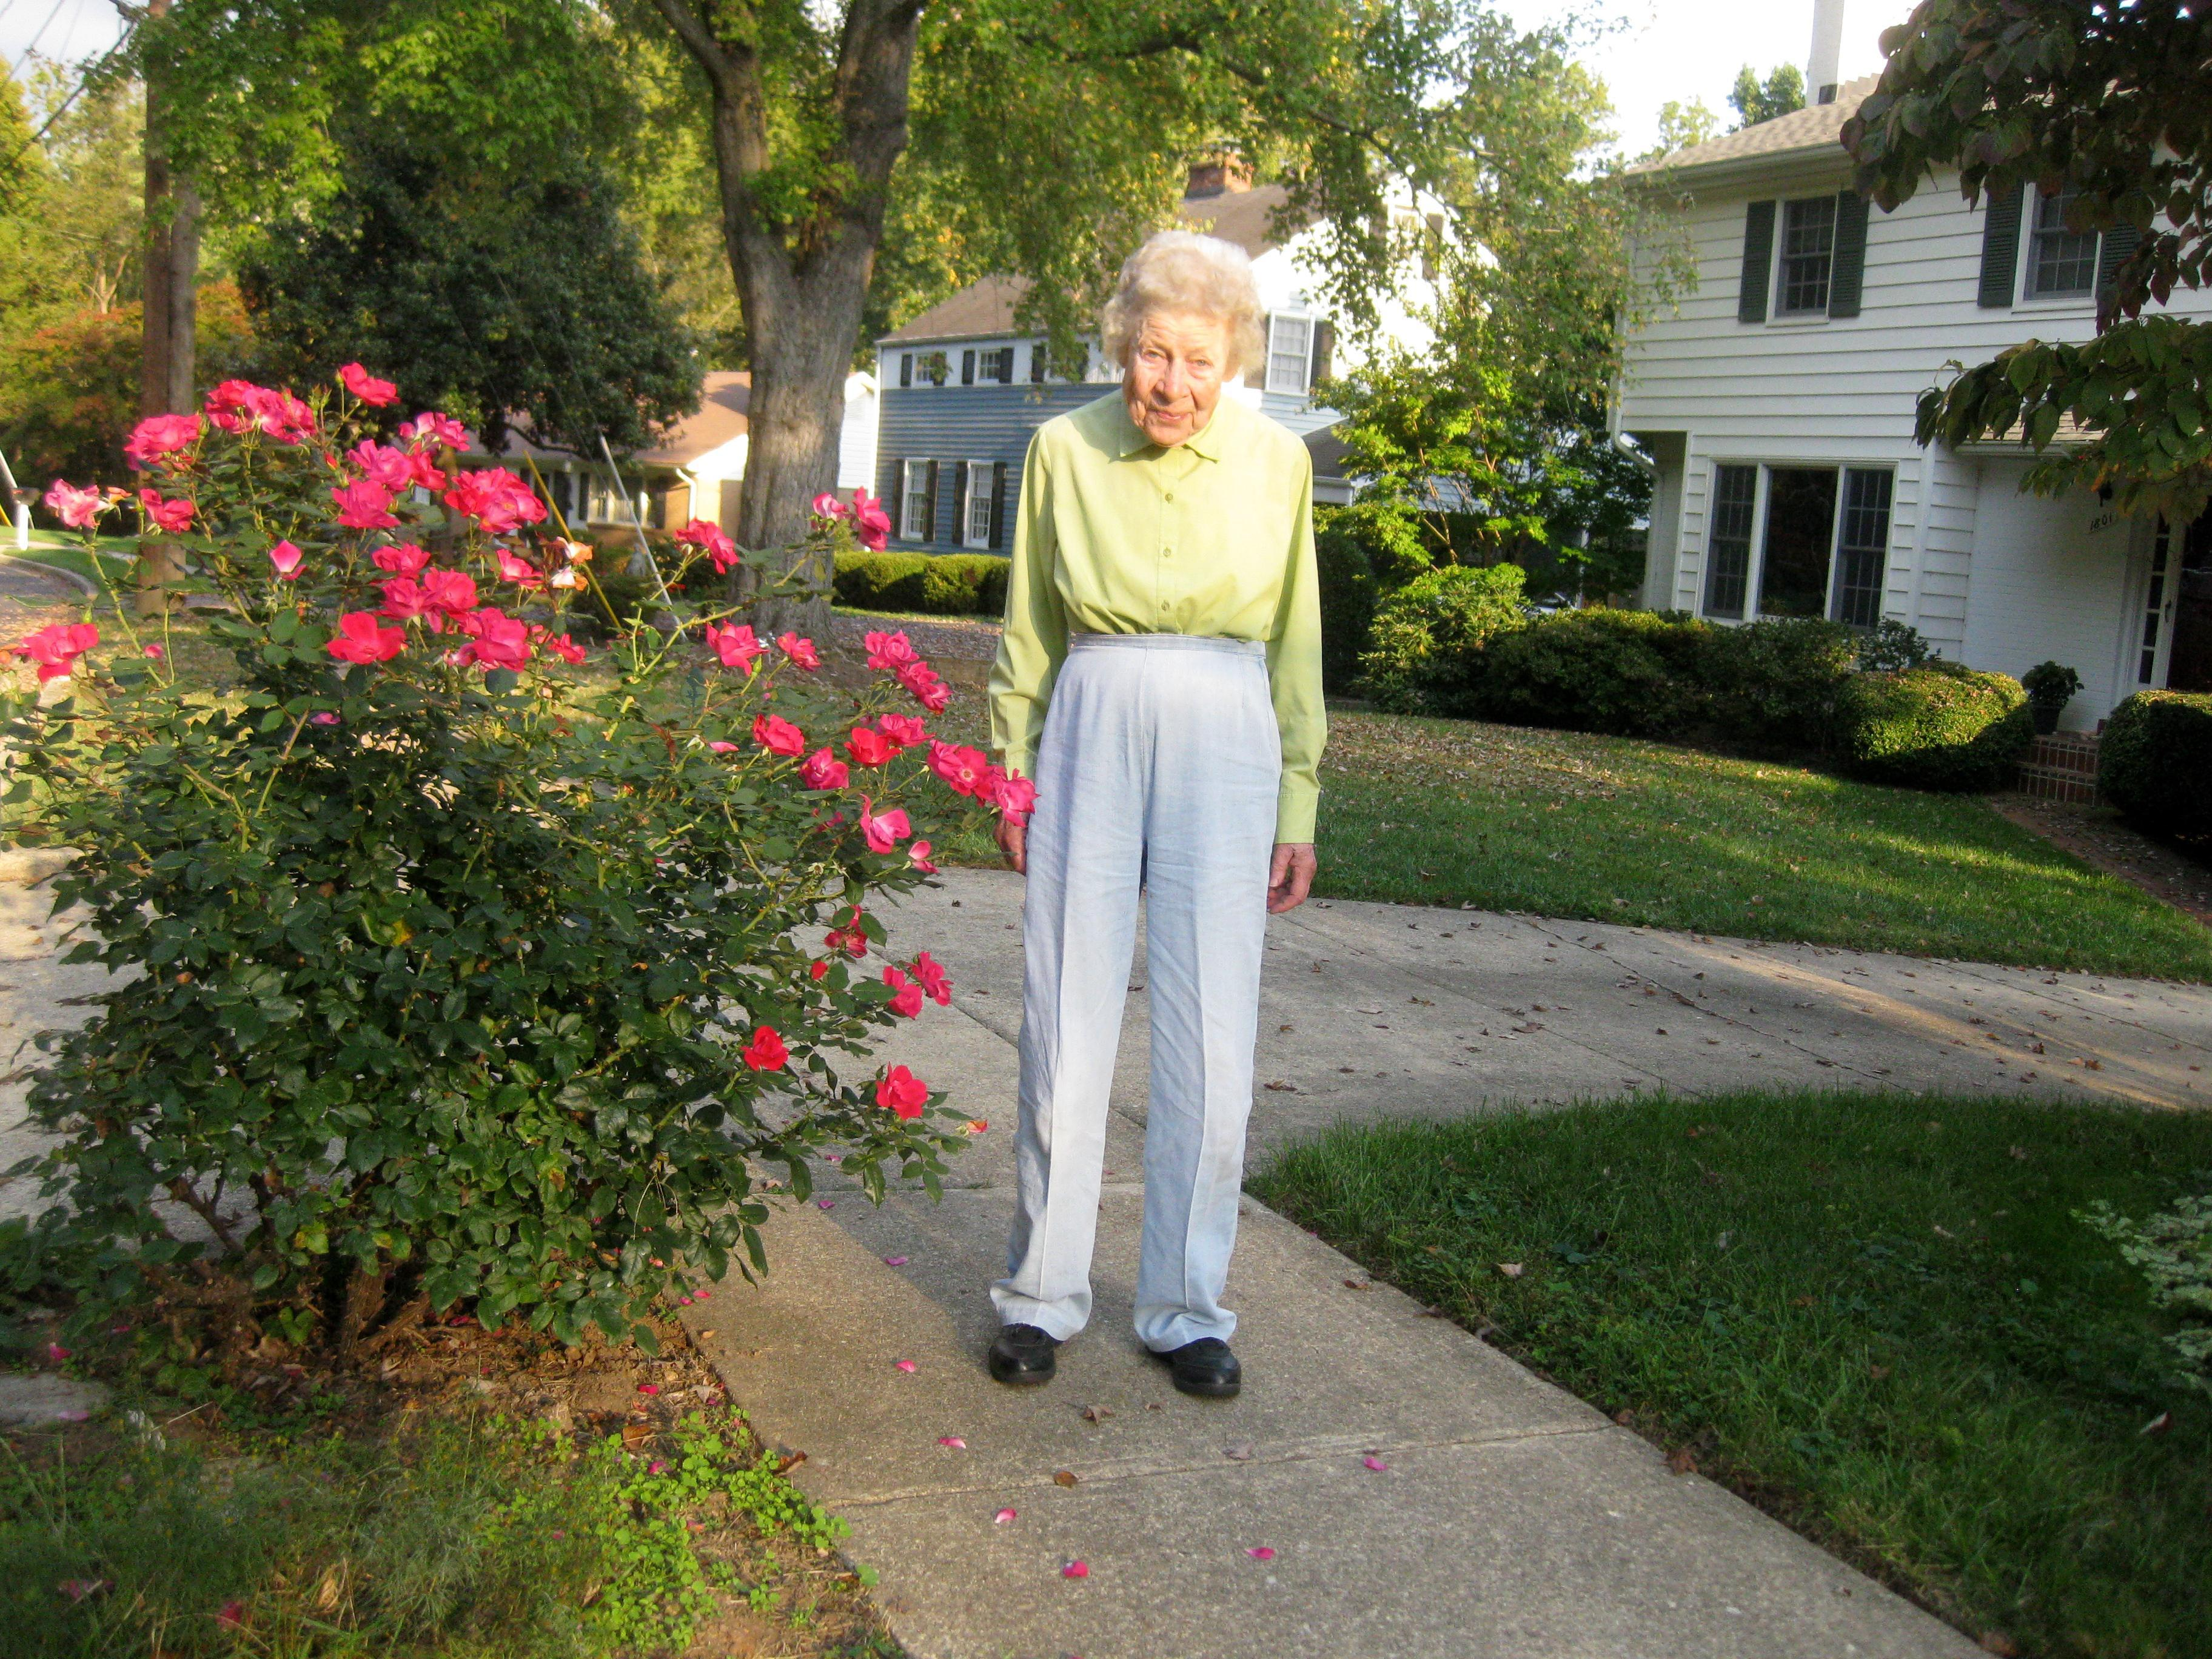 Evelyn Moore - Outside her longtime residence in Alexandria, VA